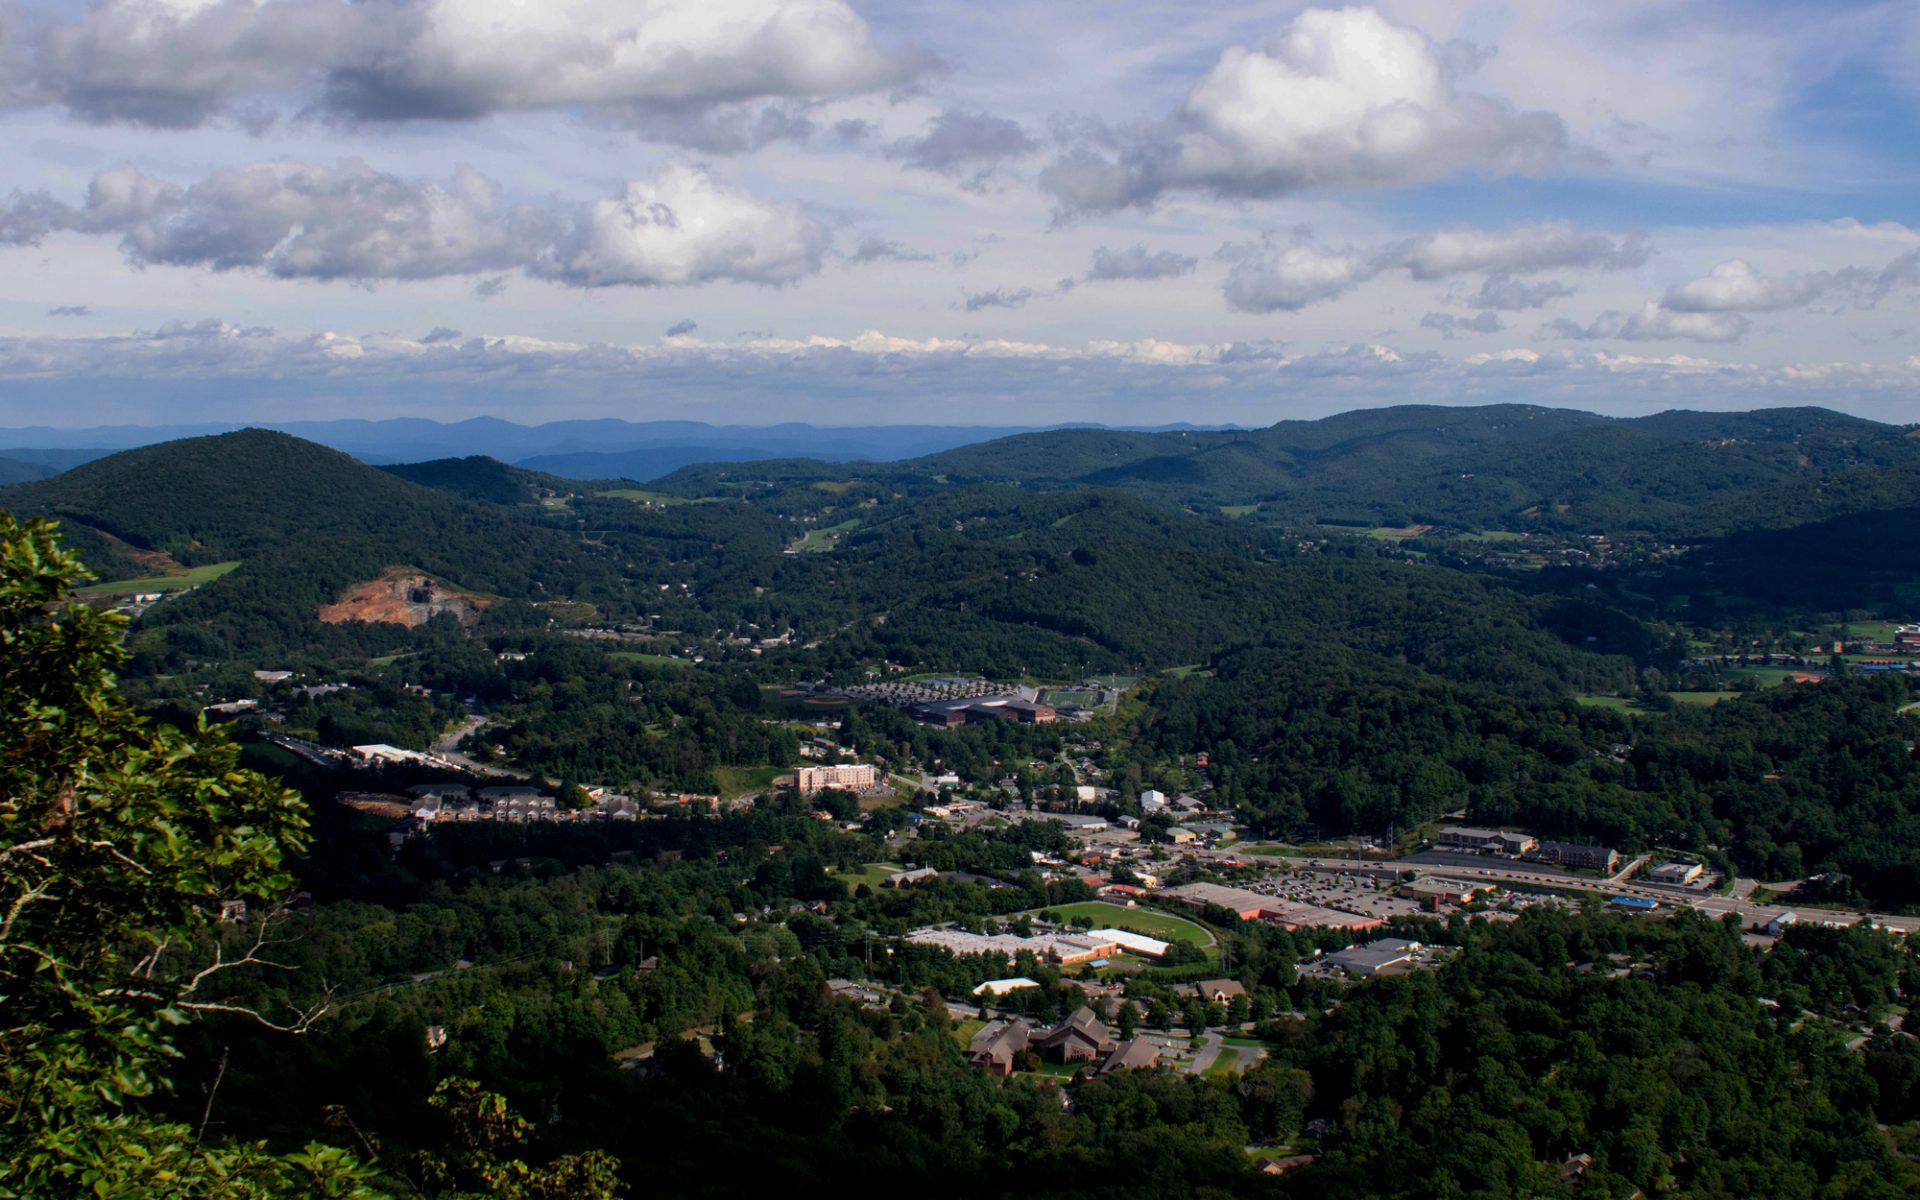 OPINION: What is Appalachia to App State?